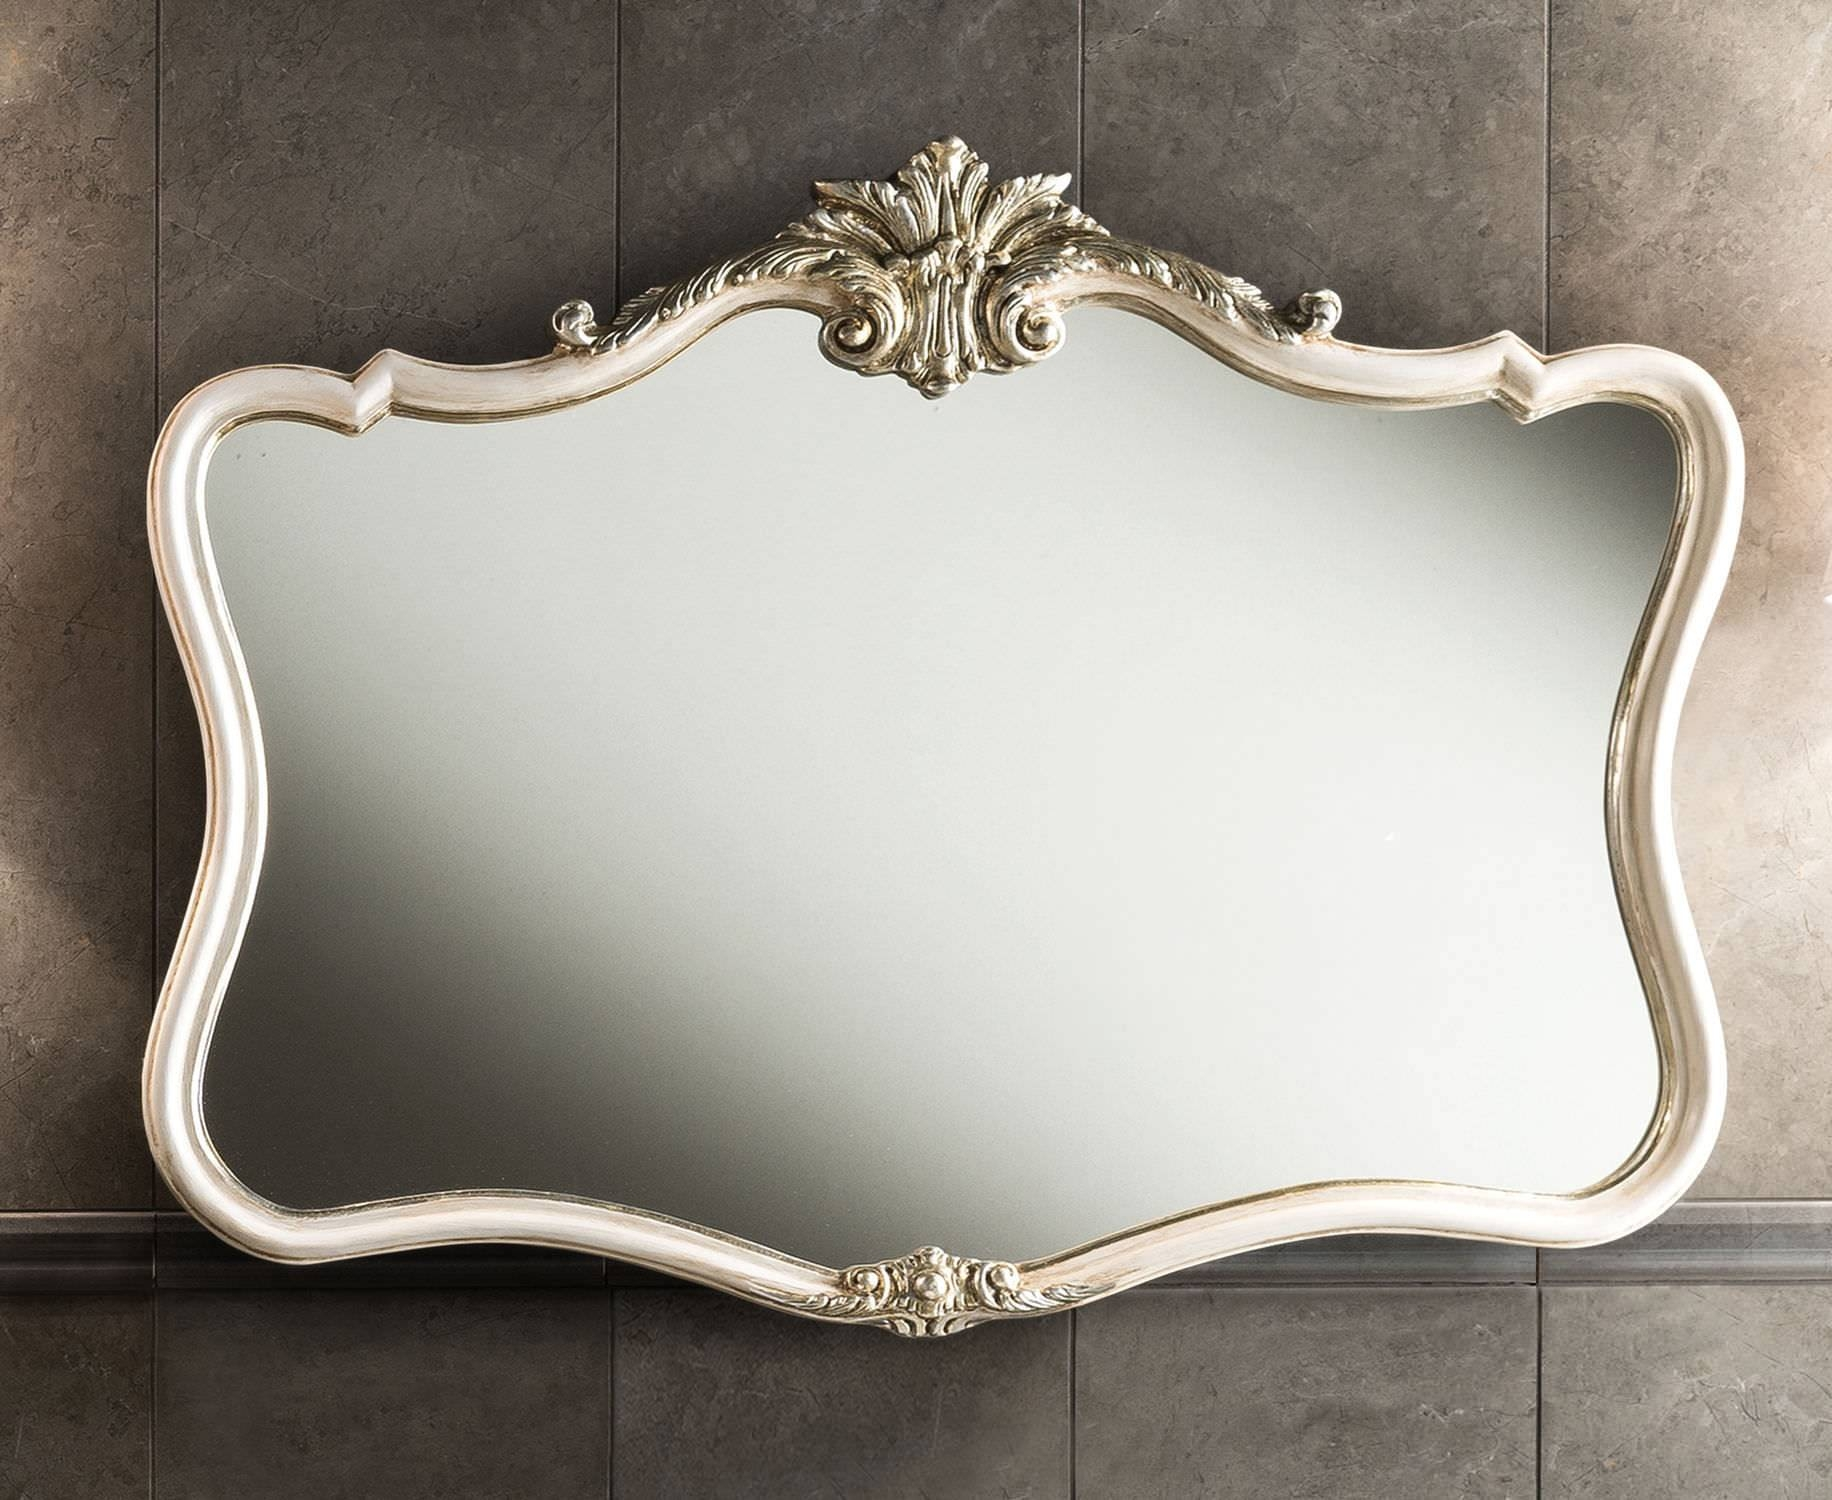 Bathroom: Astounding Baroque Mirror With Unique Frame For Bathroom intended for Baroque Mirrors (Image 10 of 25)